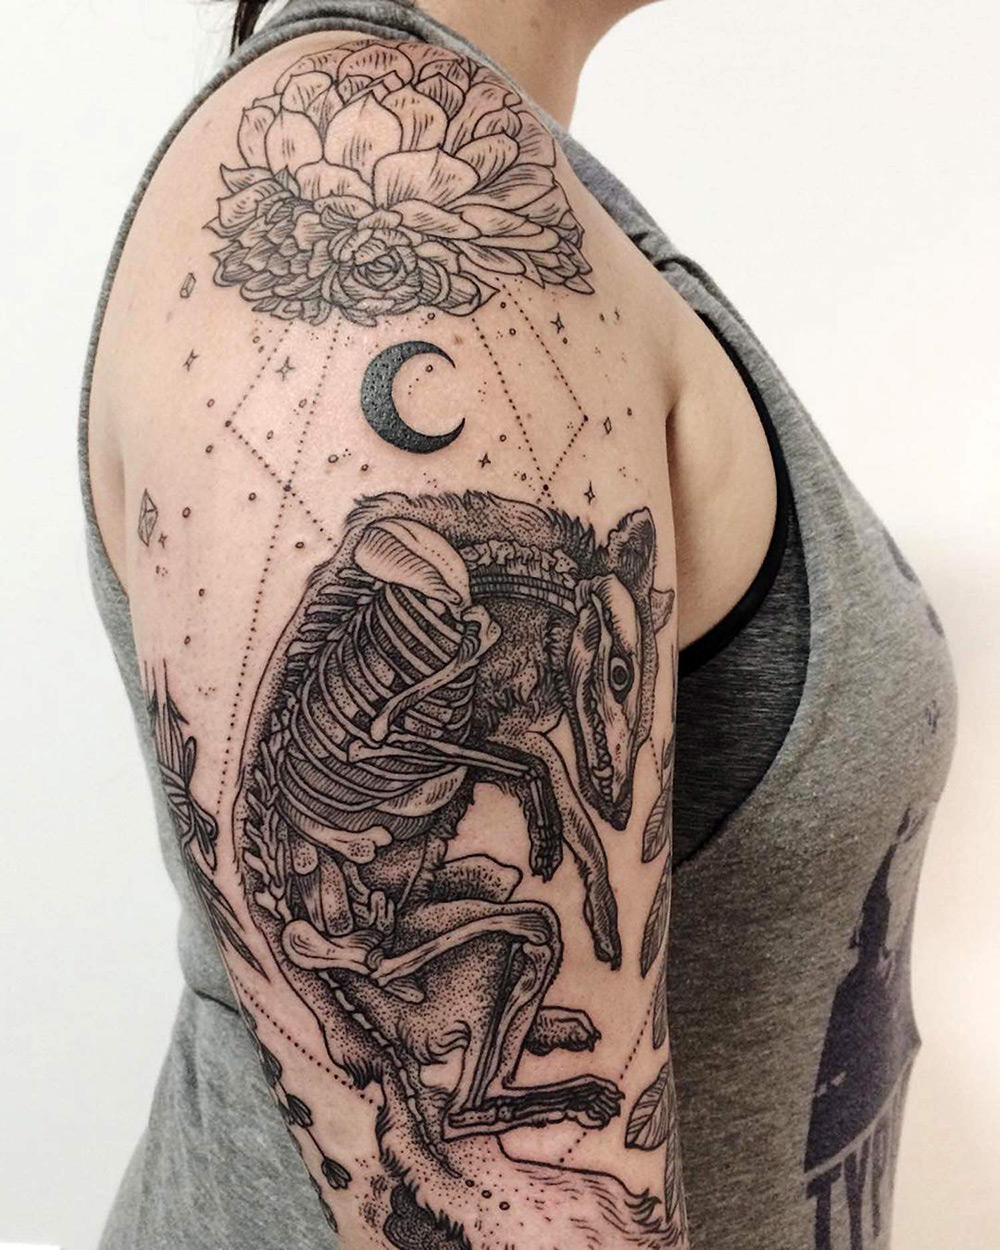 Tattoos Of Flora And Fauna Reminiscent Of Woodcut Etchings Ideas And Designs